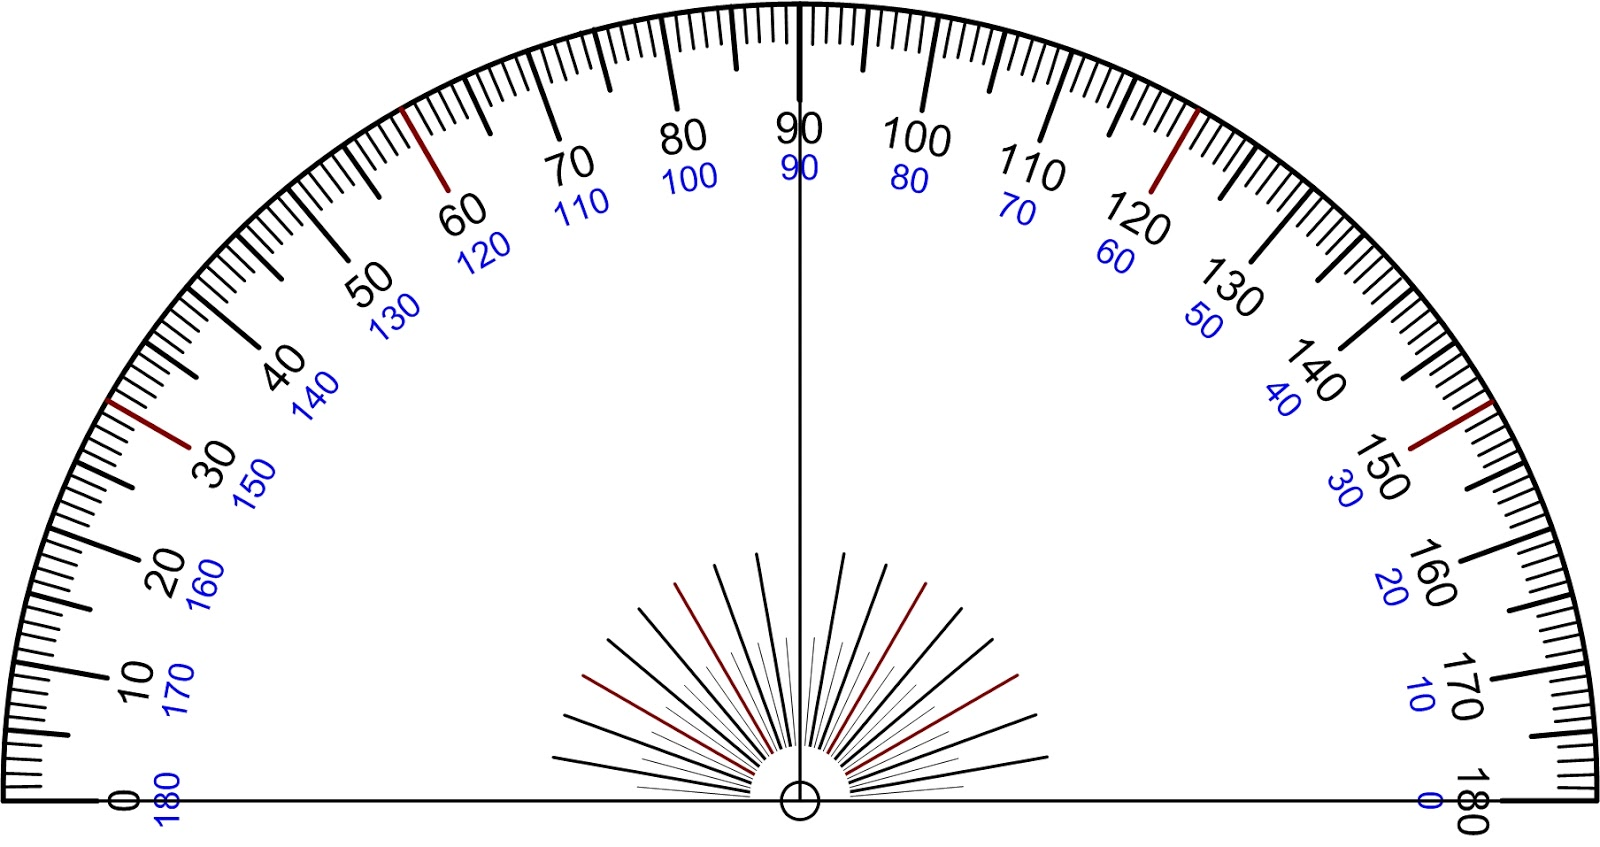 worksheet Print Protractor april 2013 mr cs academy an error occurred